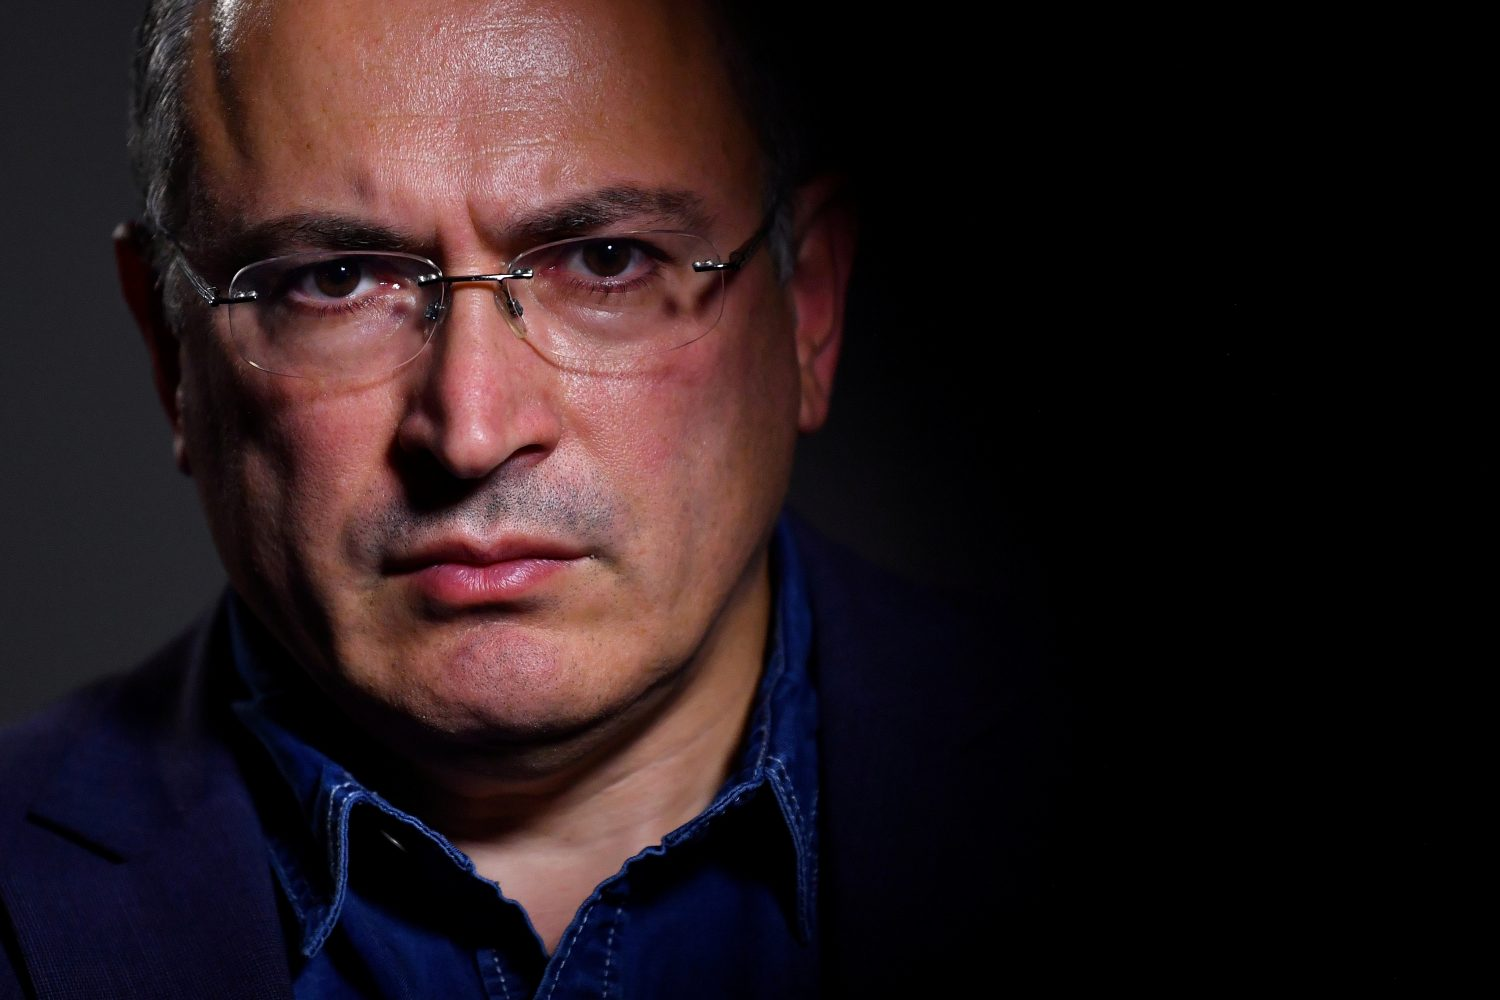 FILE PHOTO: Mikhail Khodorkovsky, a former oil tycoon who fell foul of Vladimir Putin's Kremlin, is seen during an interview with Reuters at his office in central London, Britain, August 13, 2018. REUTERS/Dylan Martinez/File Photo